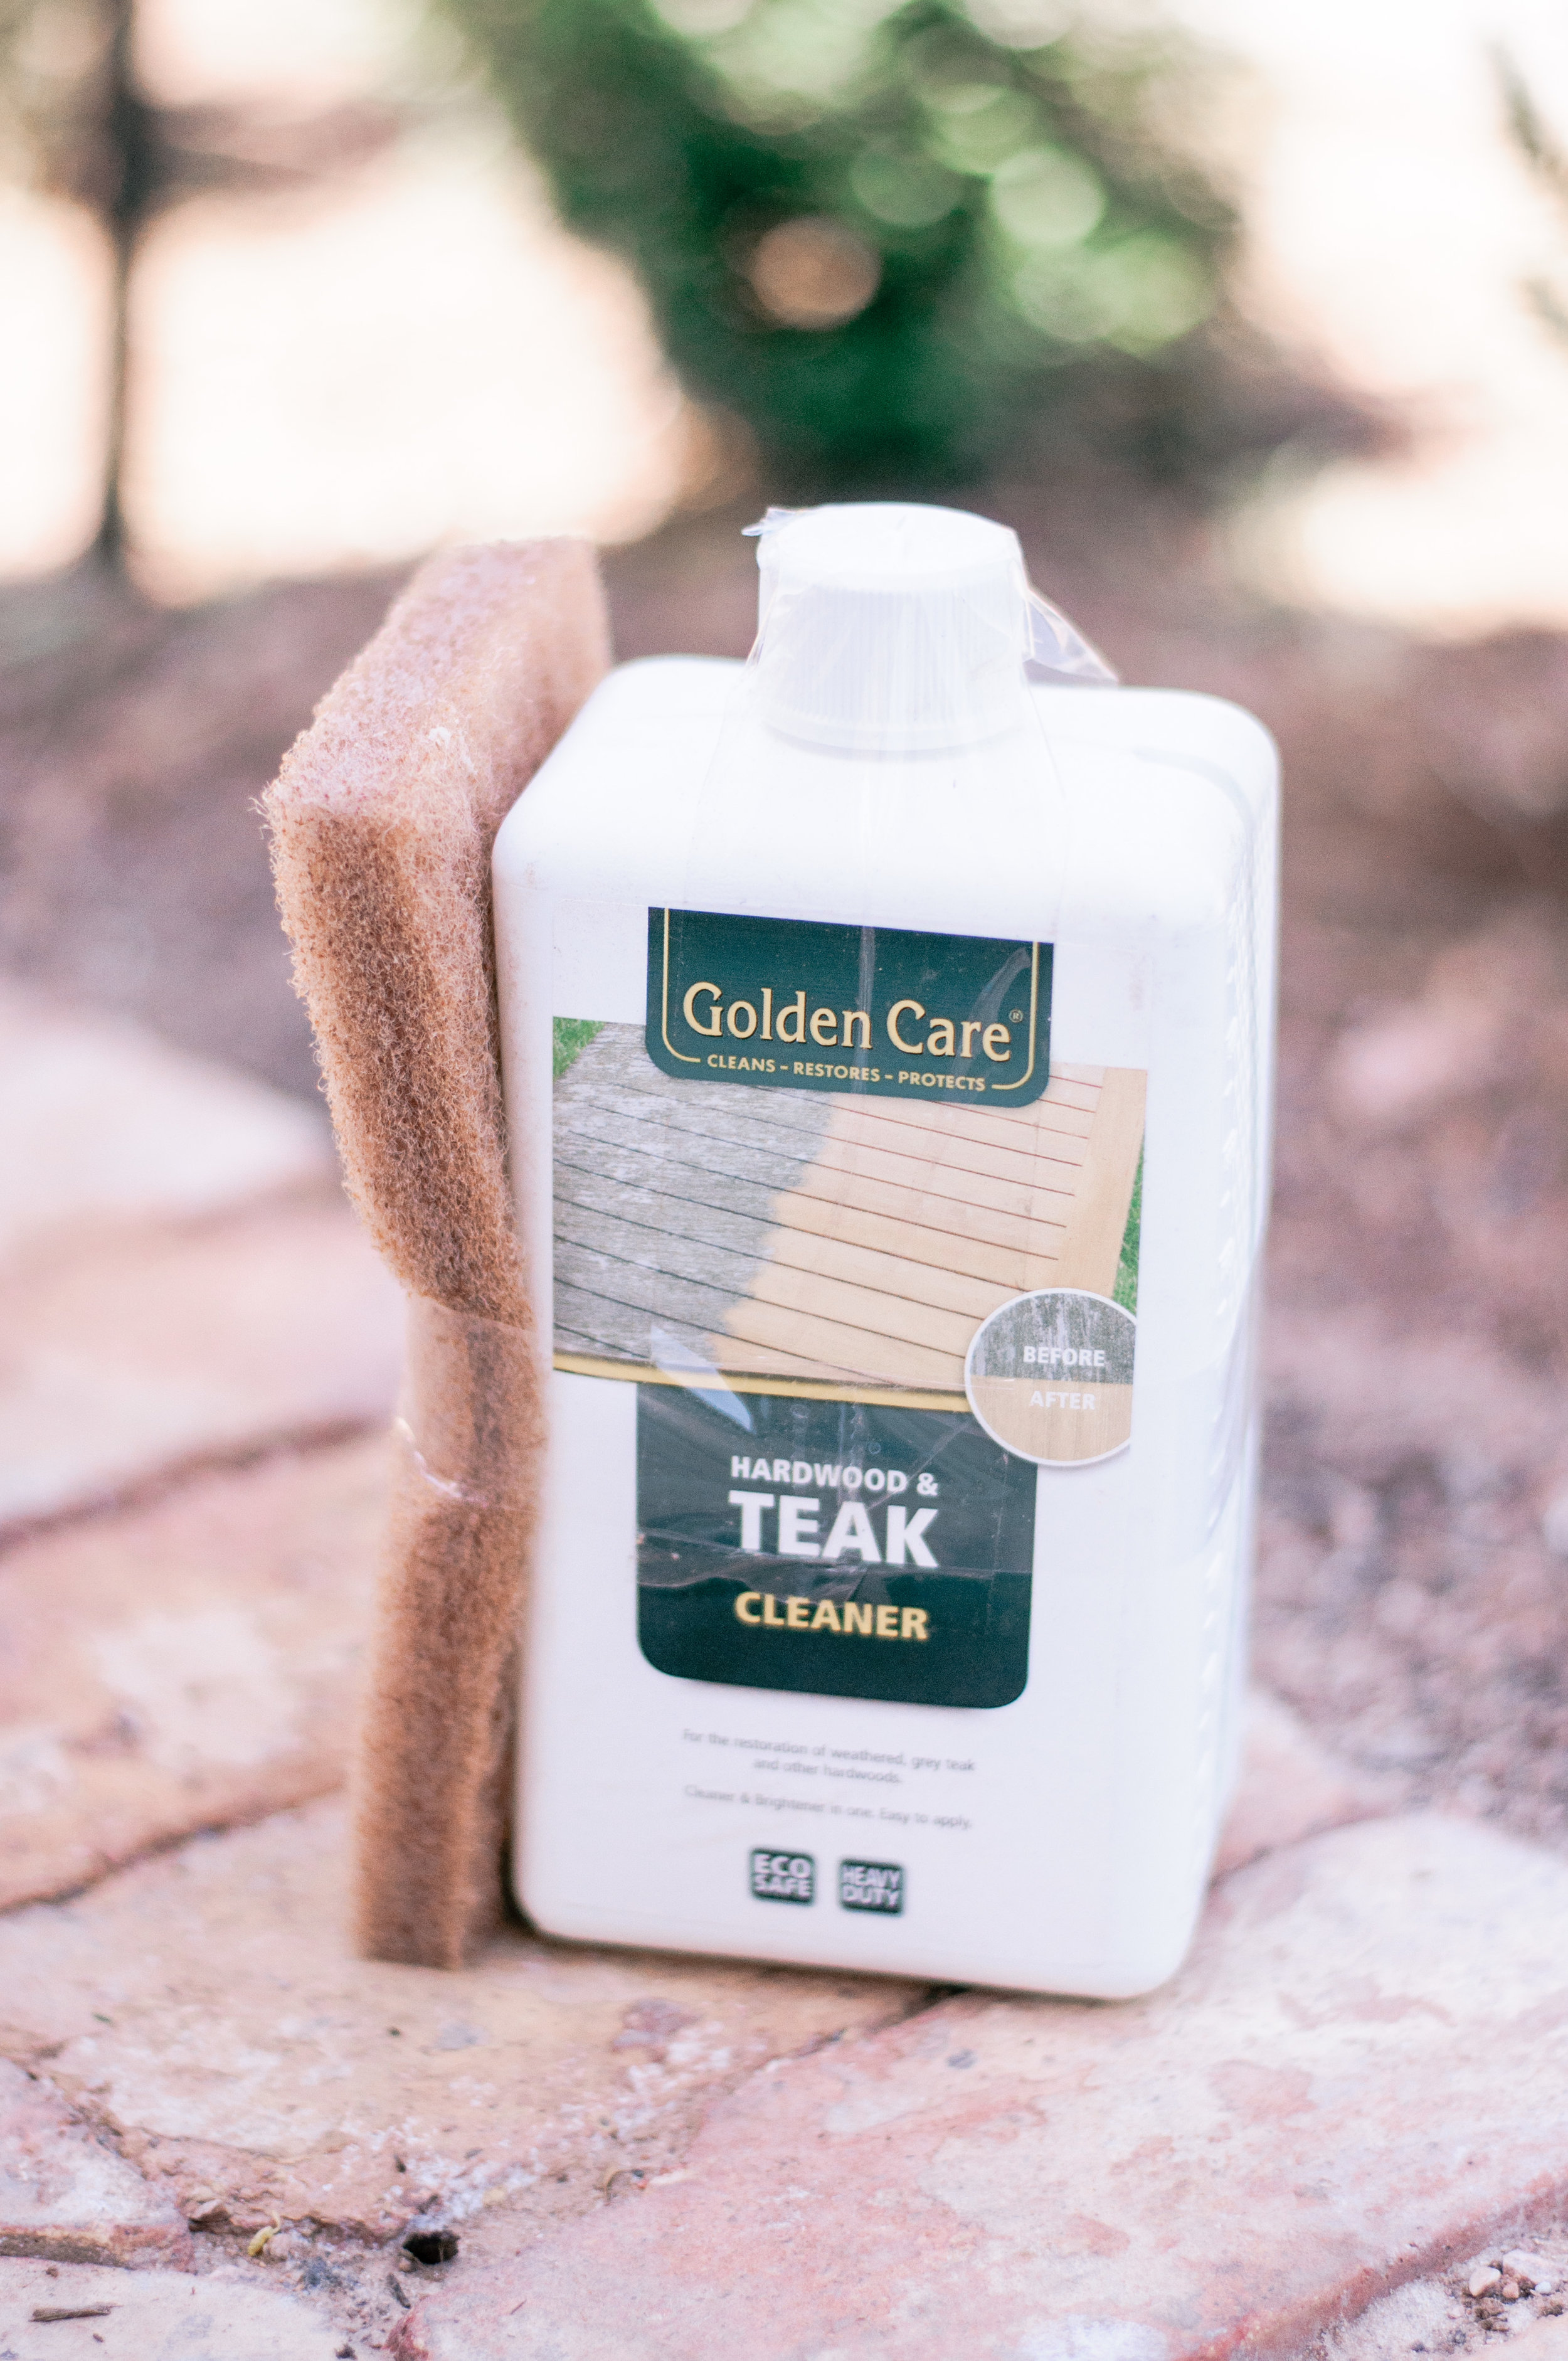 How To Use Golden Care Teak Cleaner